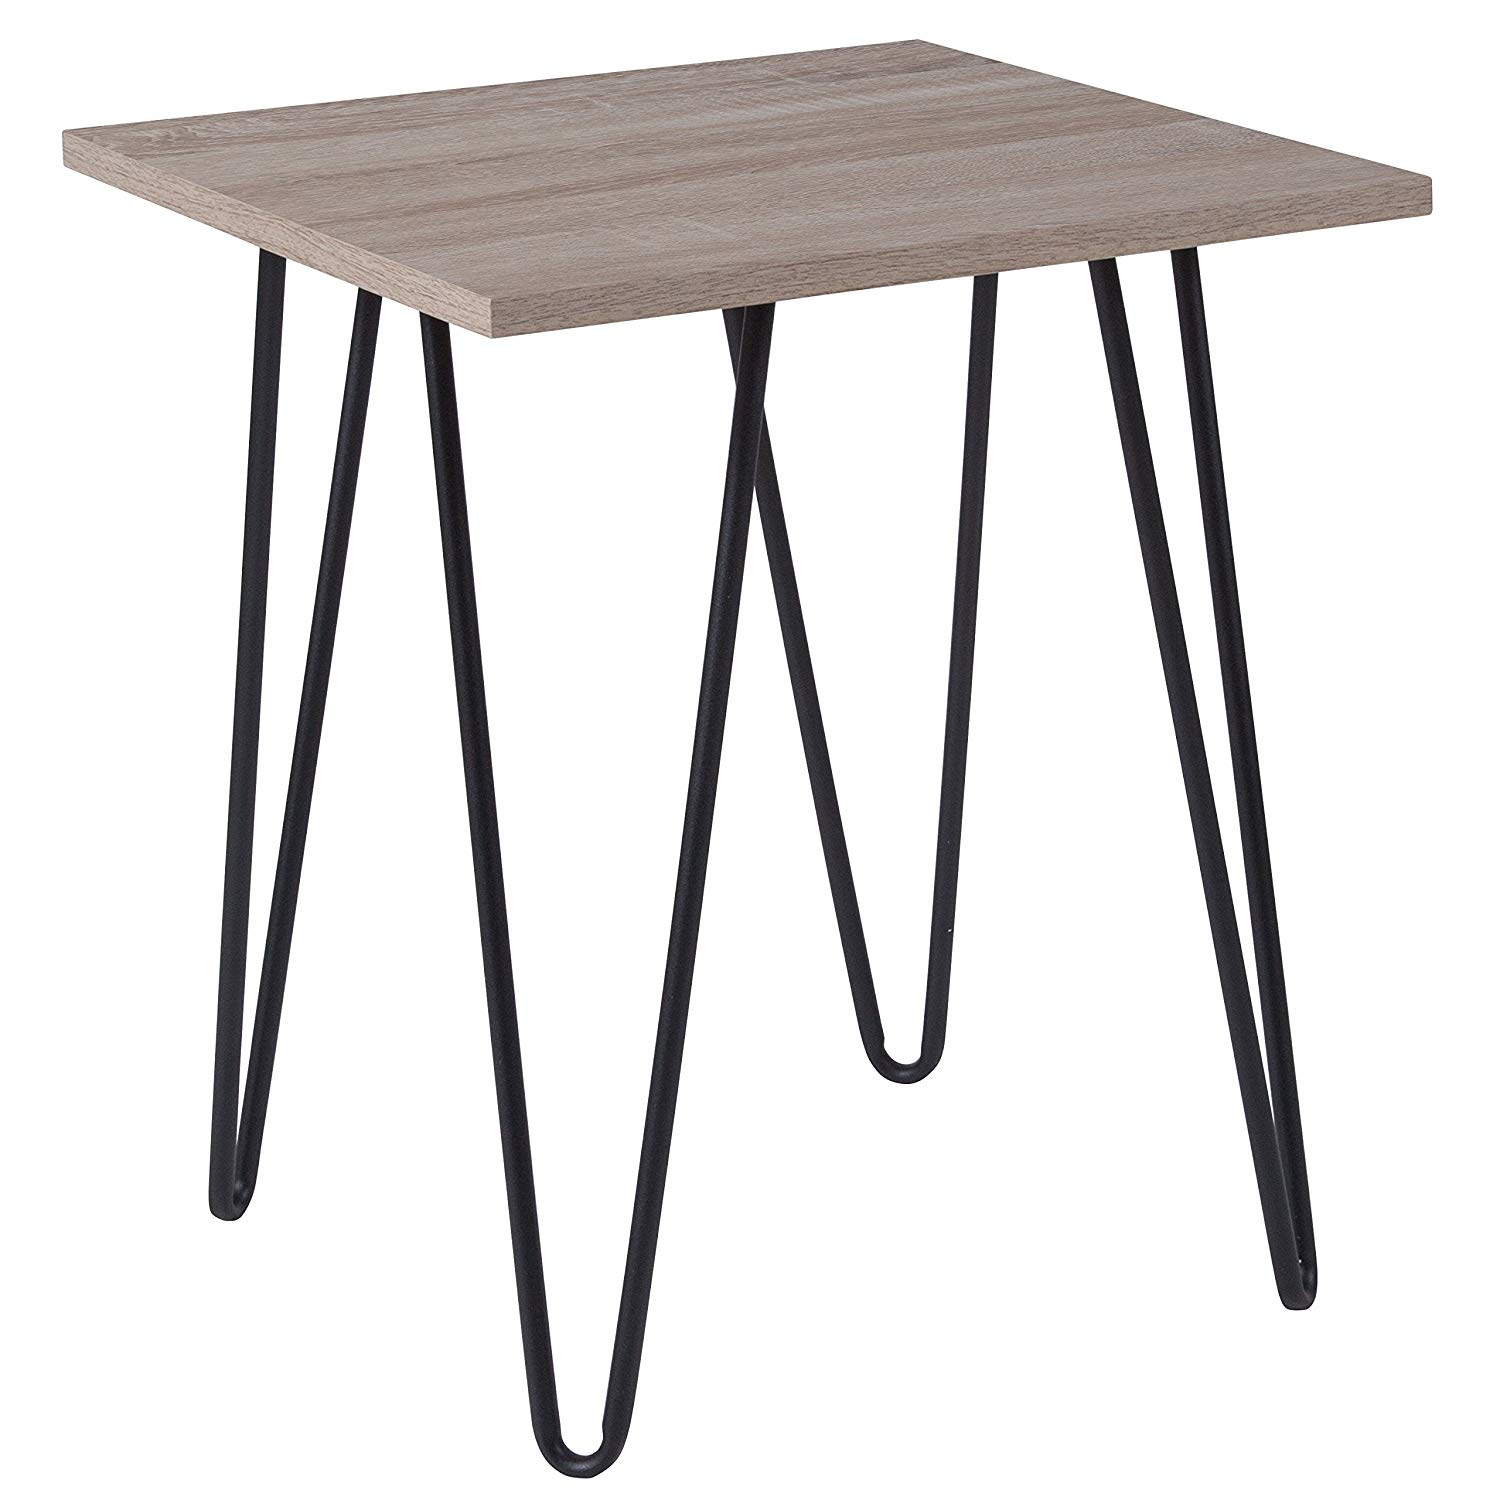 flash furniture oak park collection driftwood wood grain black finish end tables table with metal legs kitchen dining liberty whitney chair side office sofas and chairs tanner diy